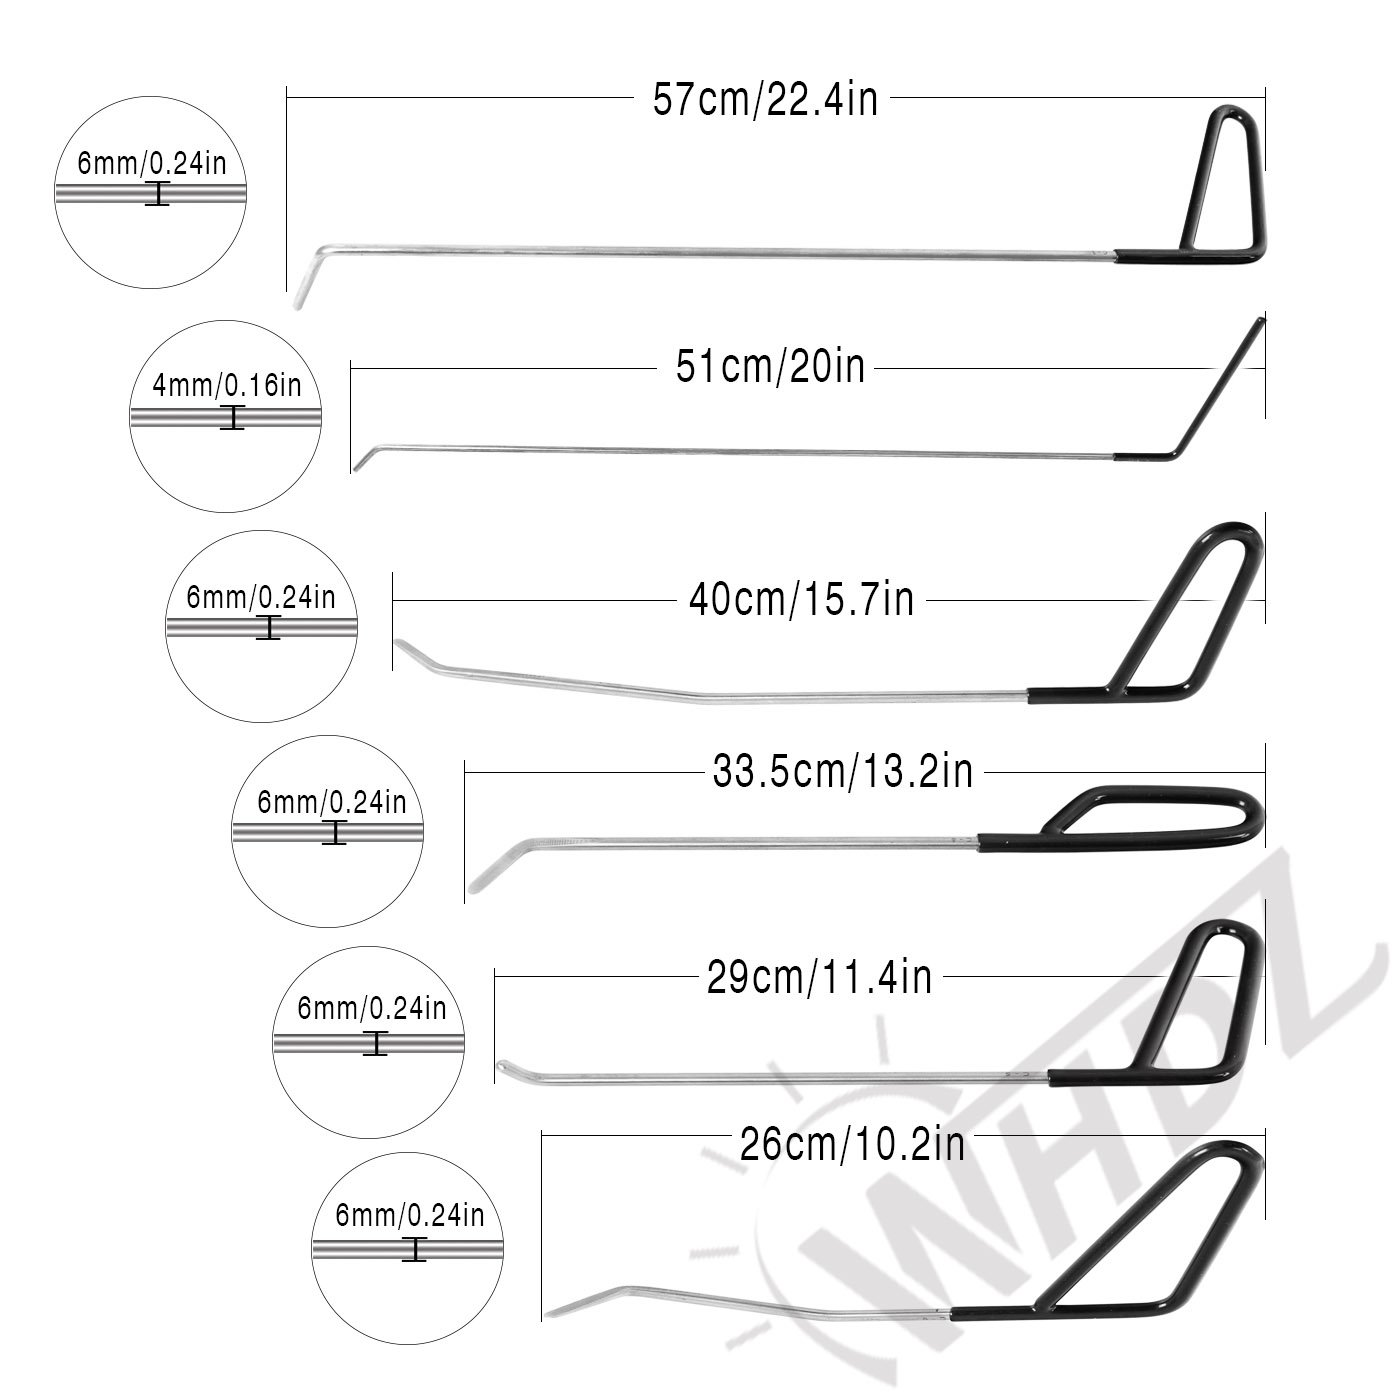 WHDZ Paintless Dent Repair Rods Auto Body Dent Removal Tools 10pcs Auto Car Body Paintless Dent Repair Dent Puller Dent Hammer Tap Down by WHDZ (Image #3)